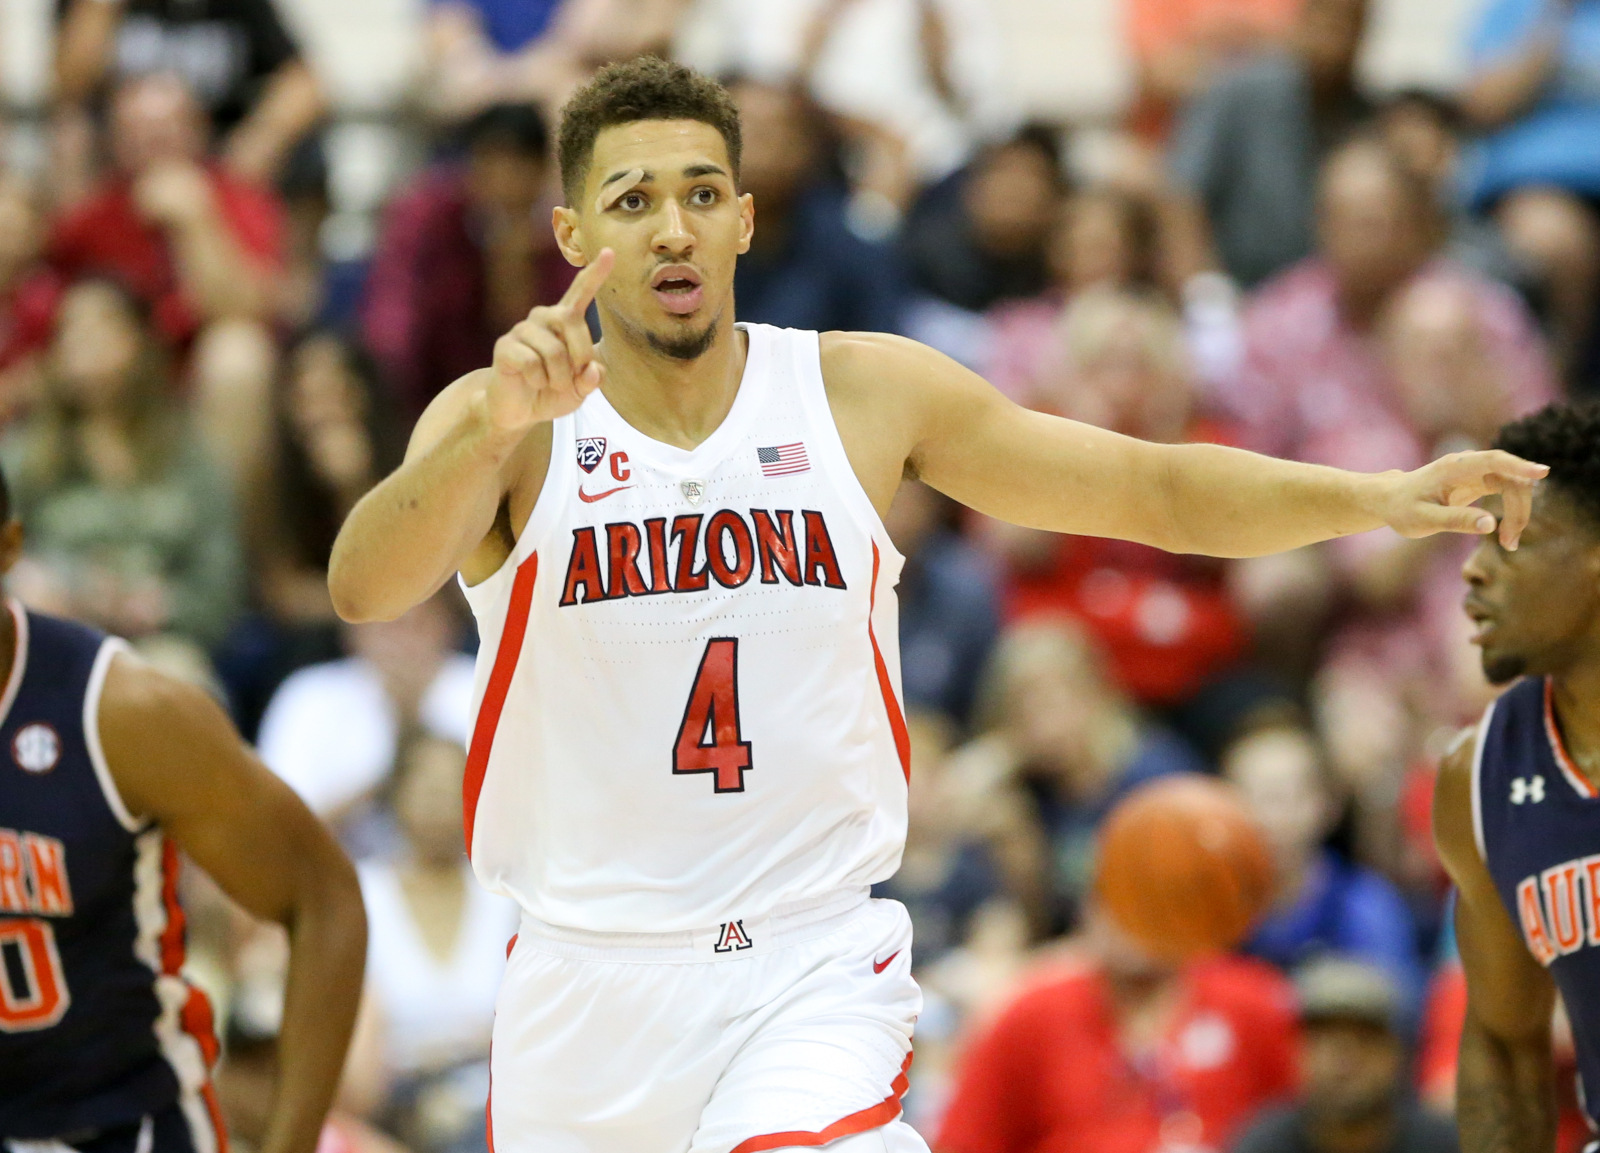 Arizona Basketball: Chase Jeter named to Pac-12 All Academic Team